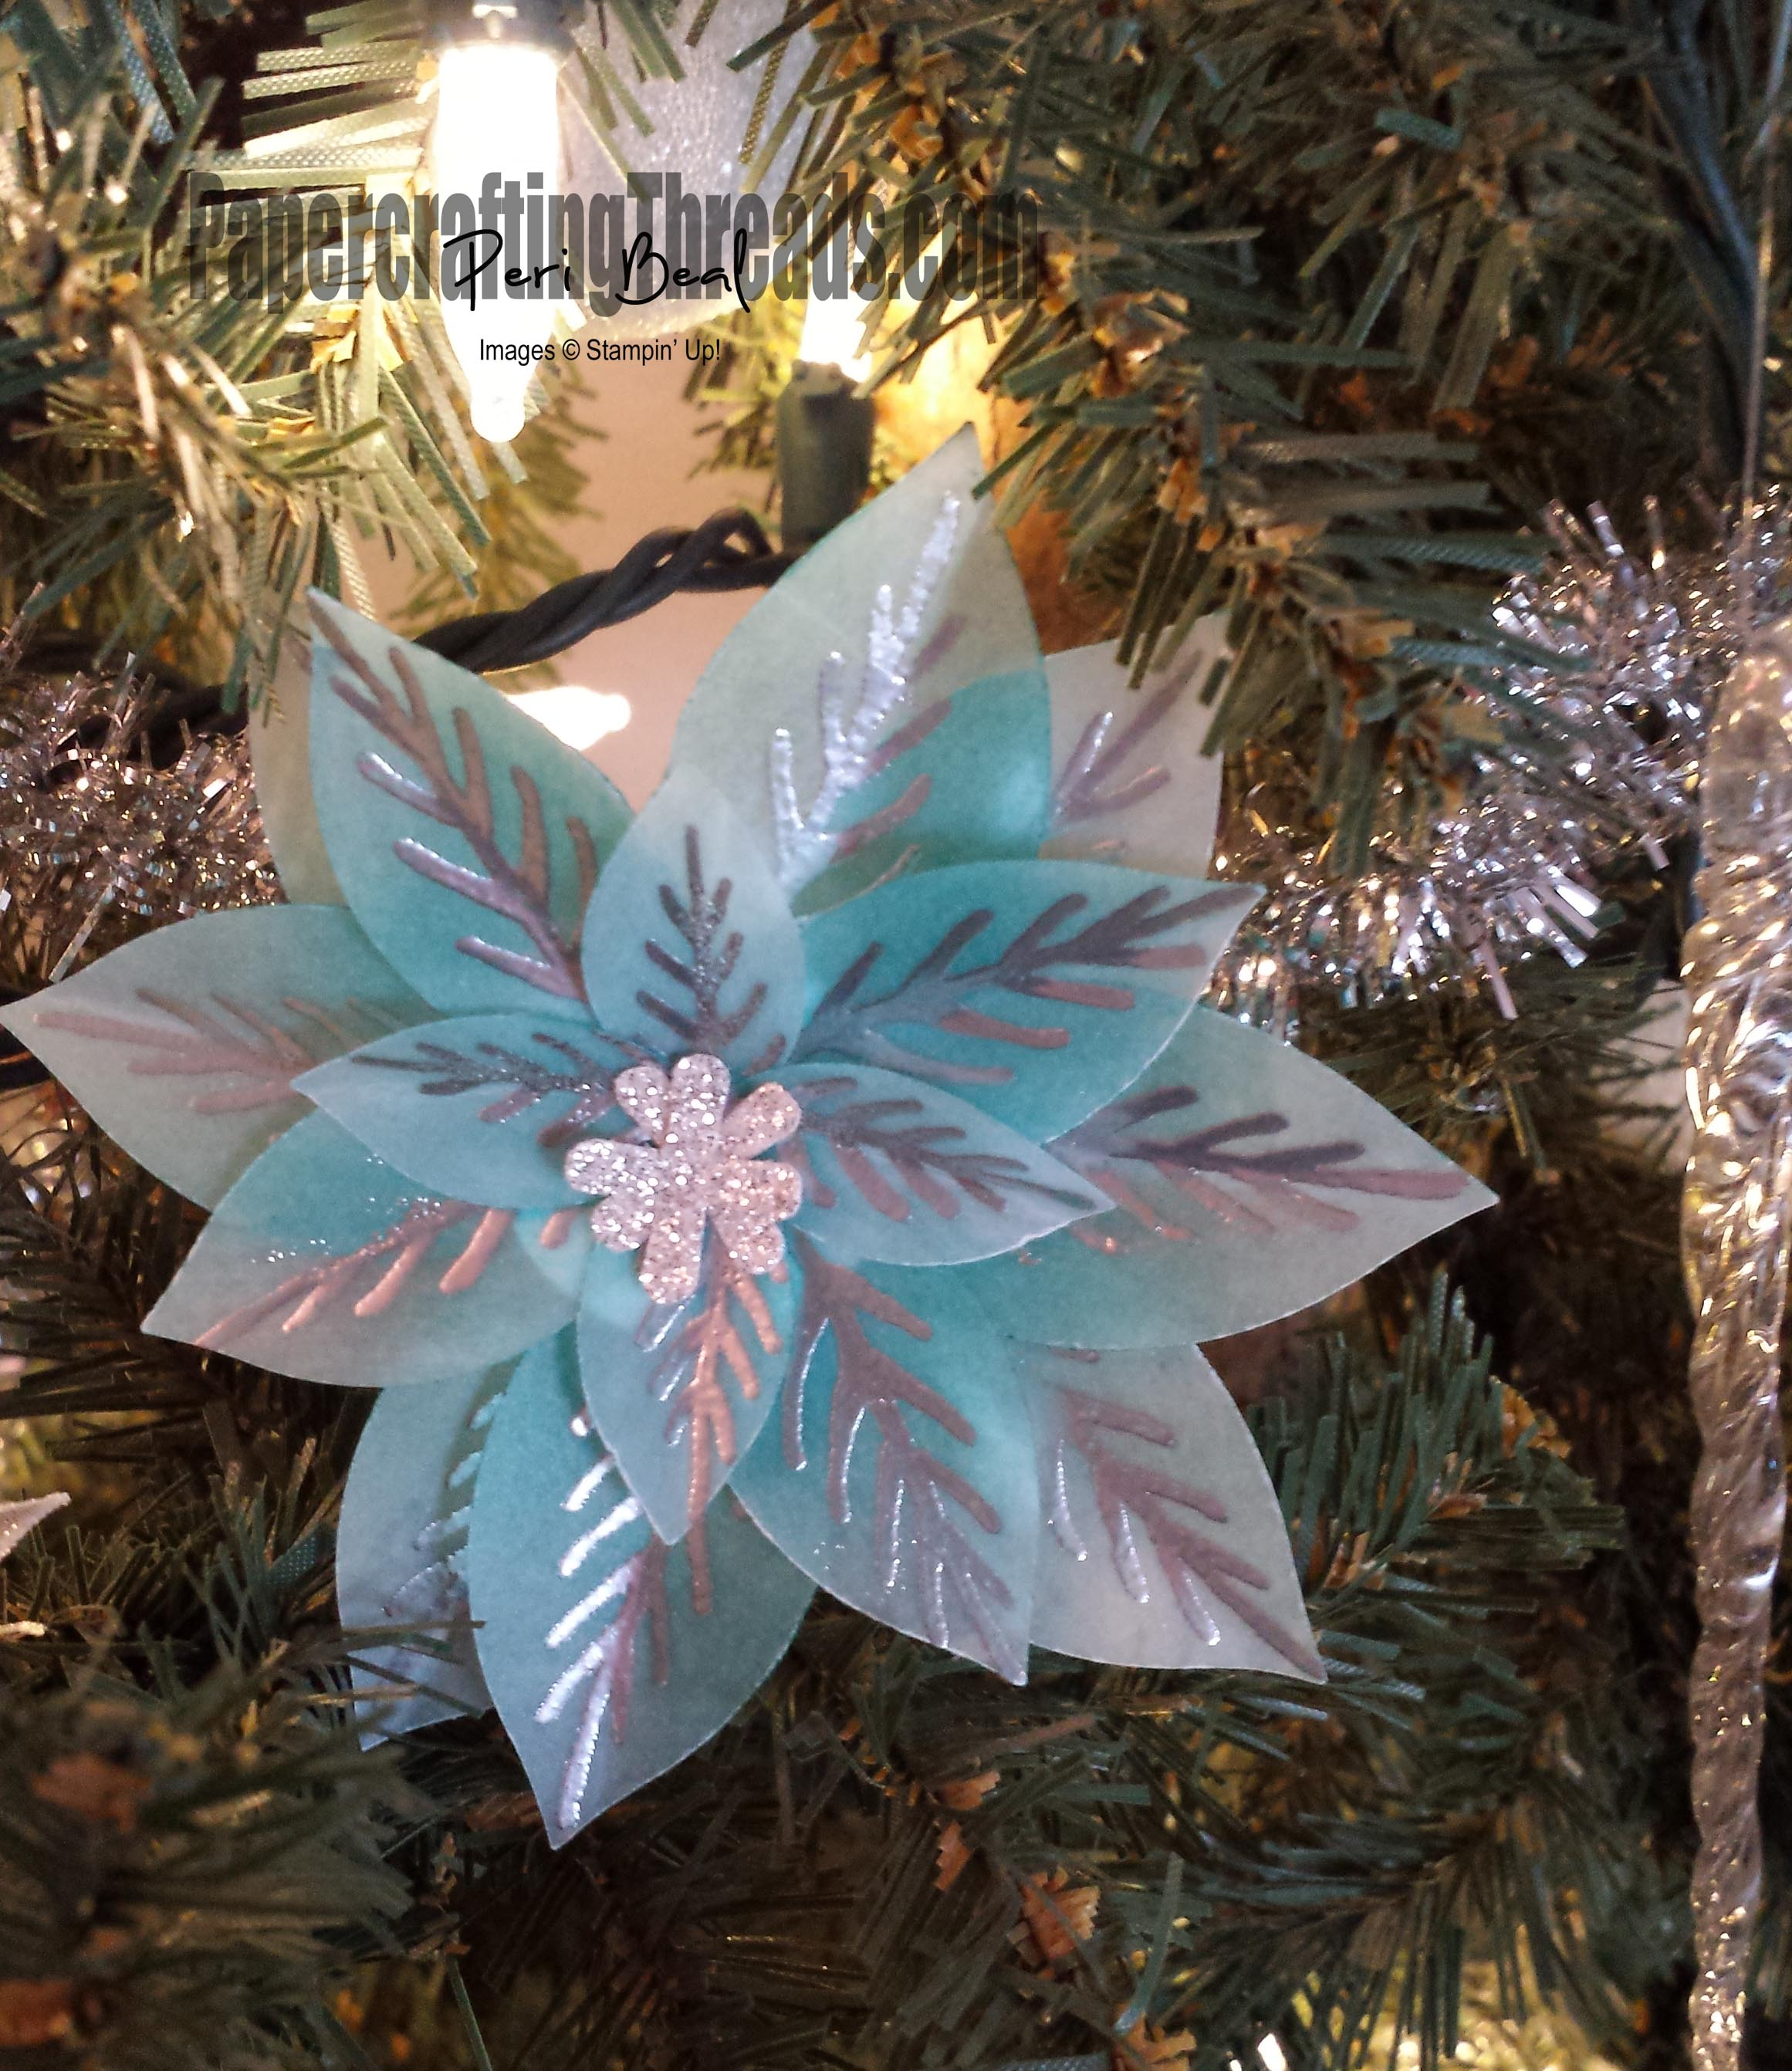 ill have a blue christmas without you december 24 2015 no comments blue ice poinsettia - I Ll Have A Blue Christmas Without You